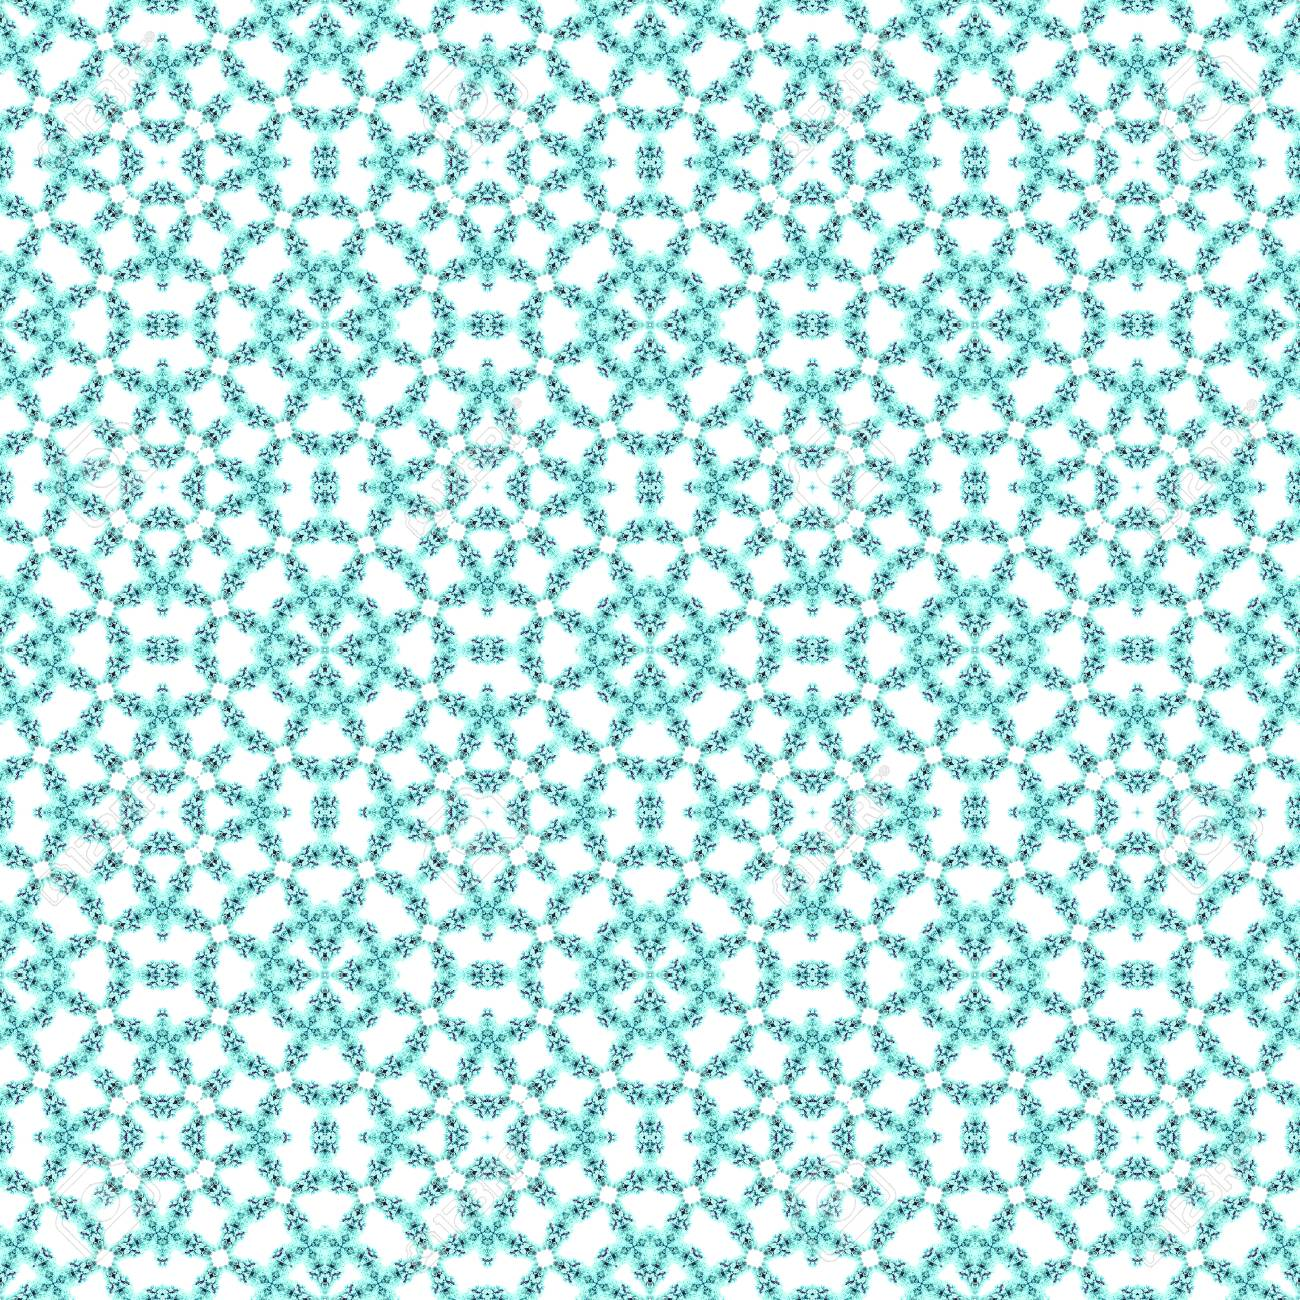 Abstract flowers seamless pattern background. Kaleidoscope from flowers. Hydraulic tile design. - 104074905